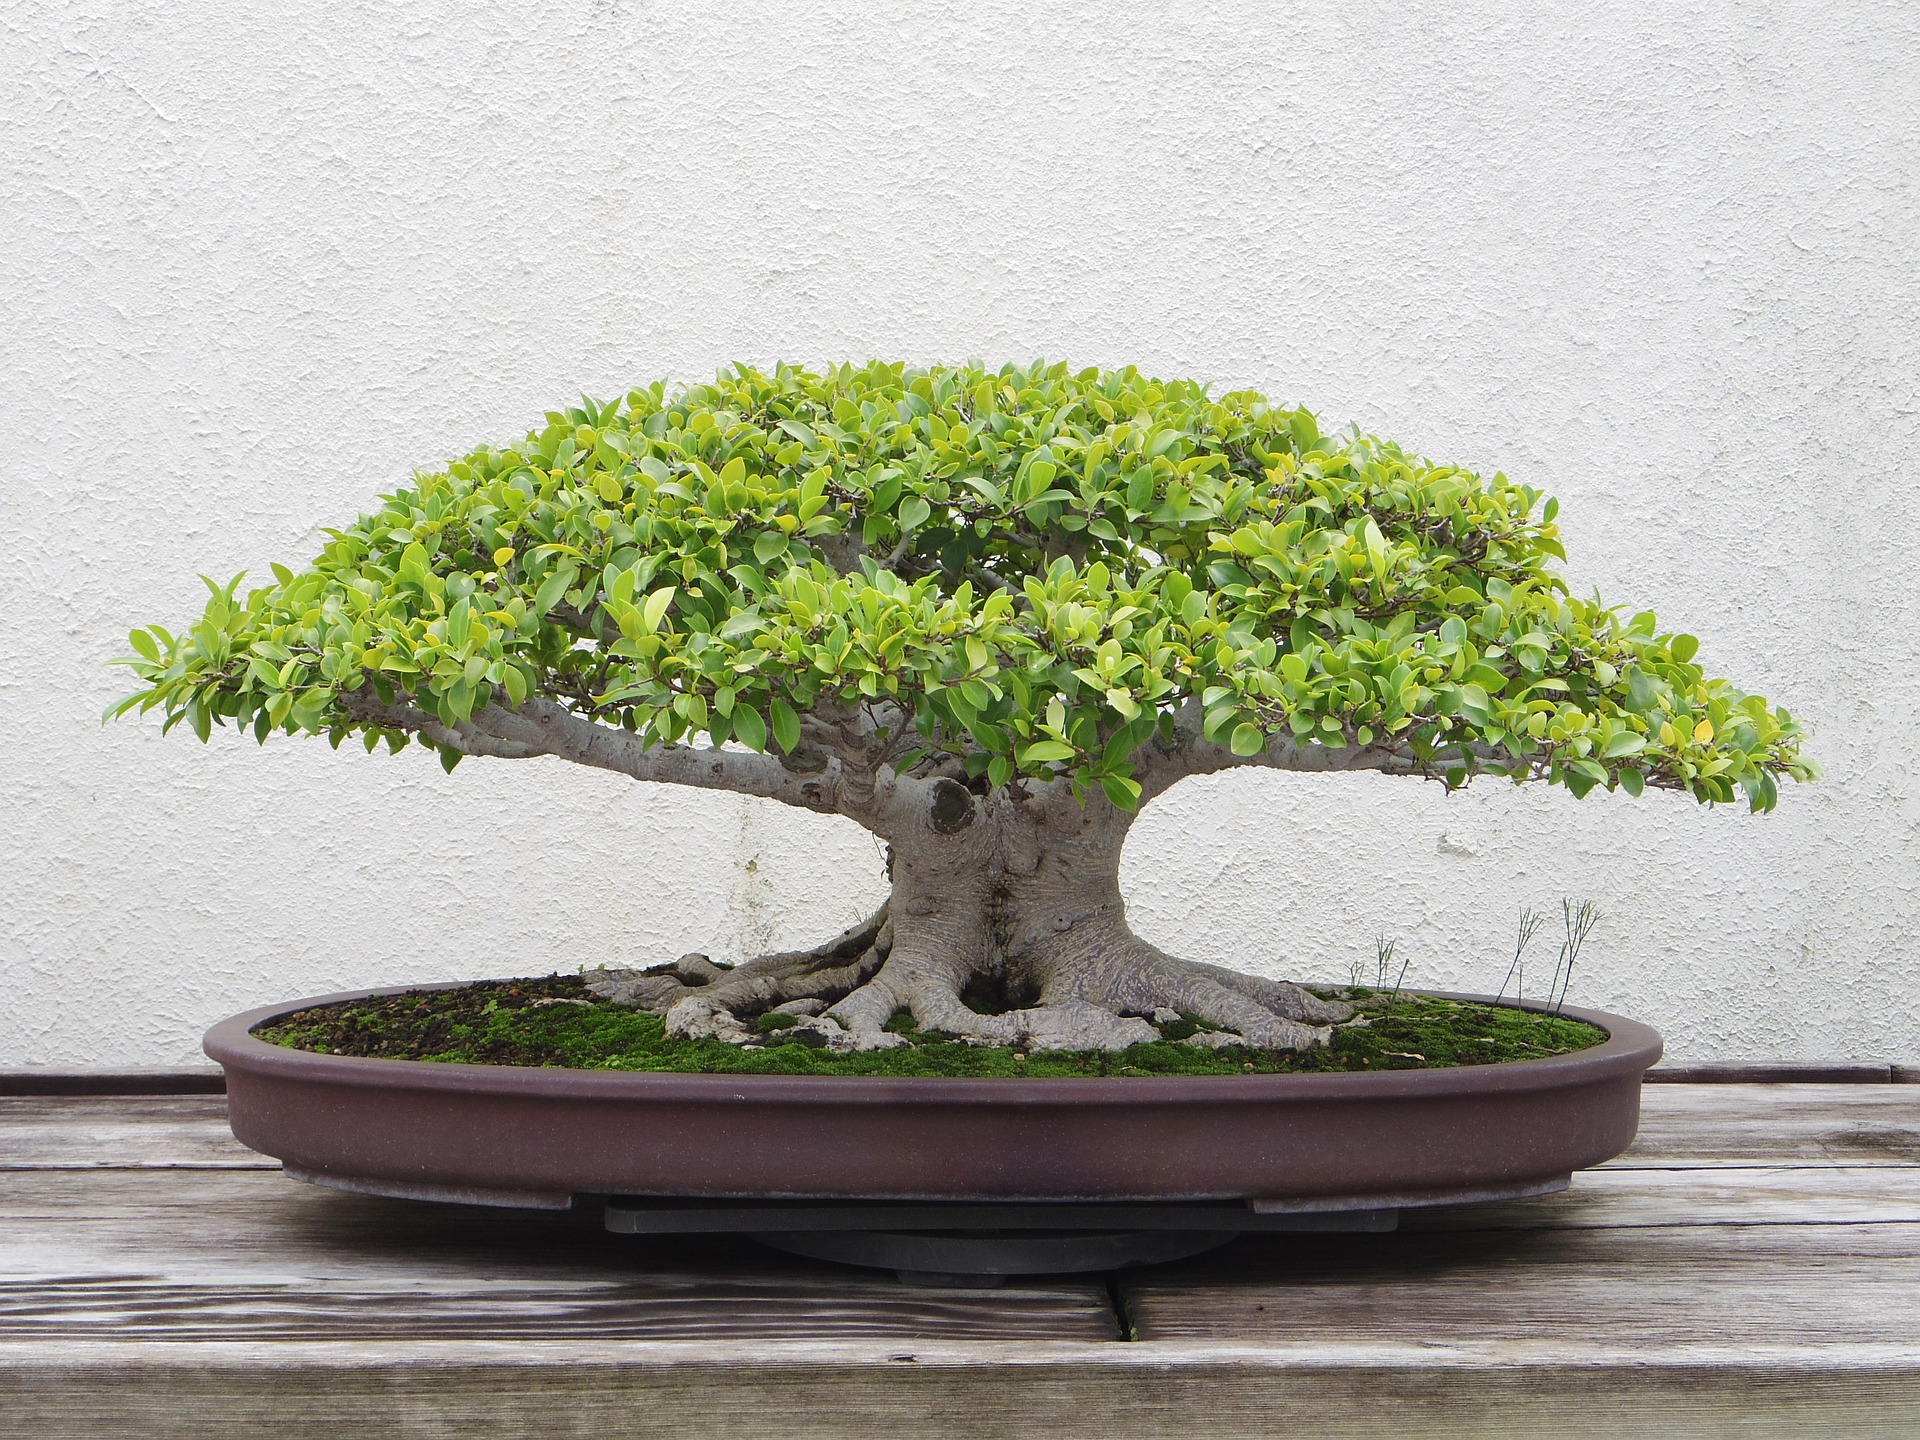 Beginners Should Know These Things Before They Buy A Bonsai Tree